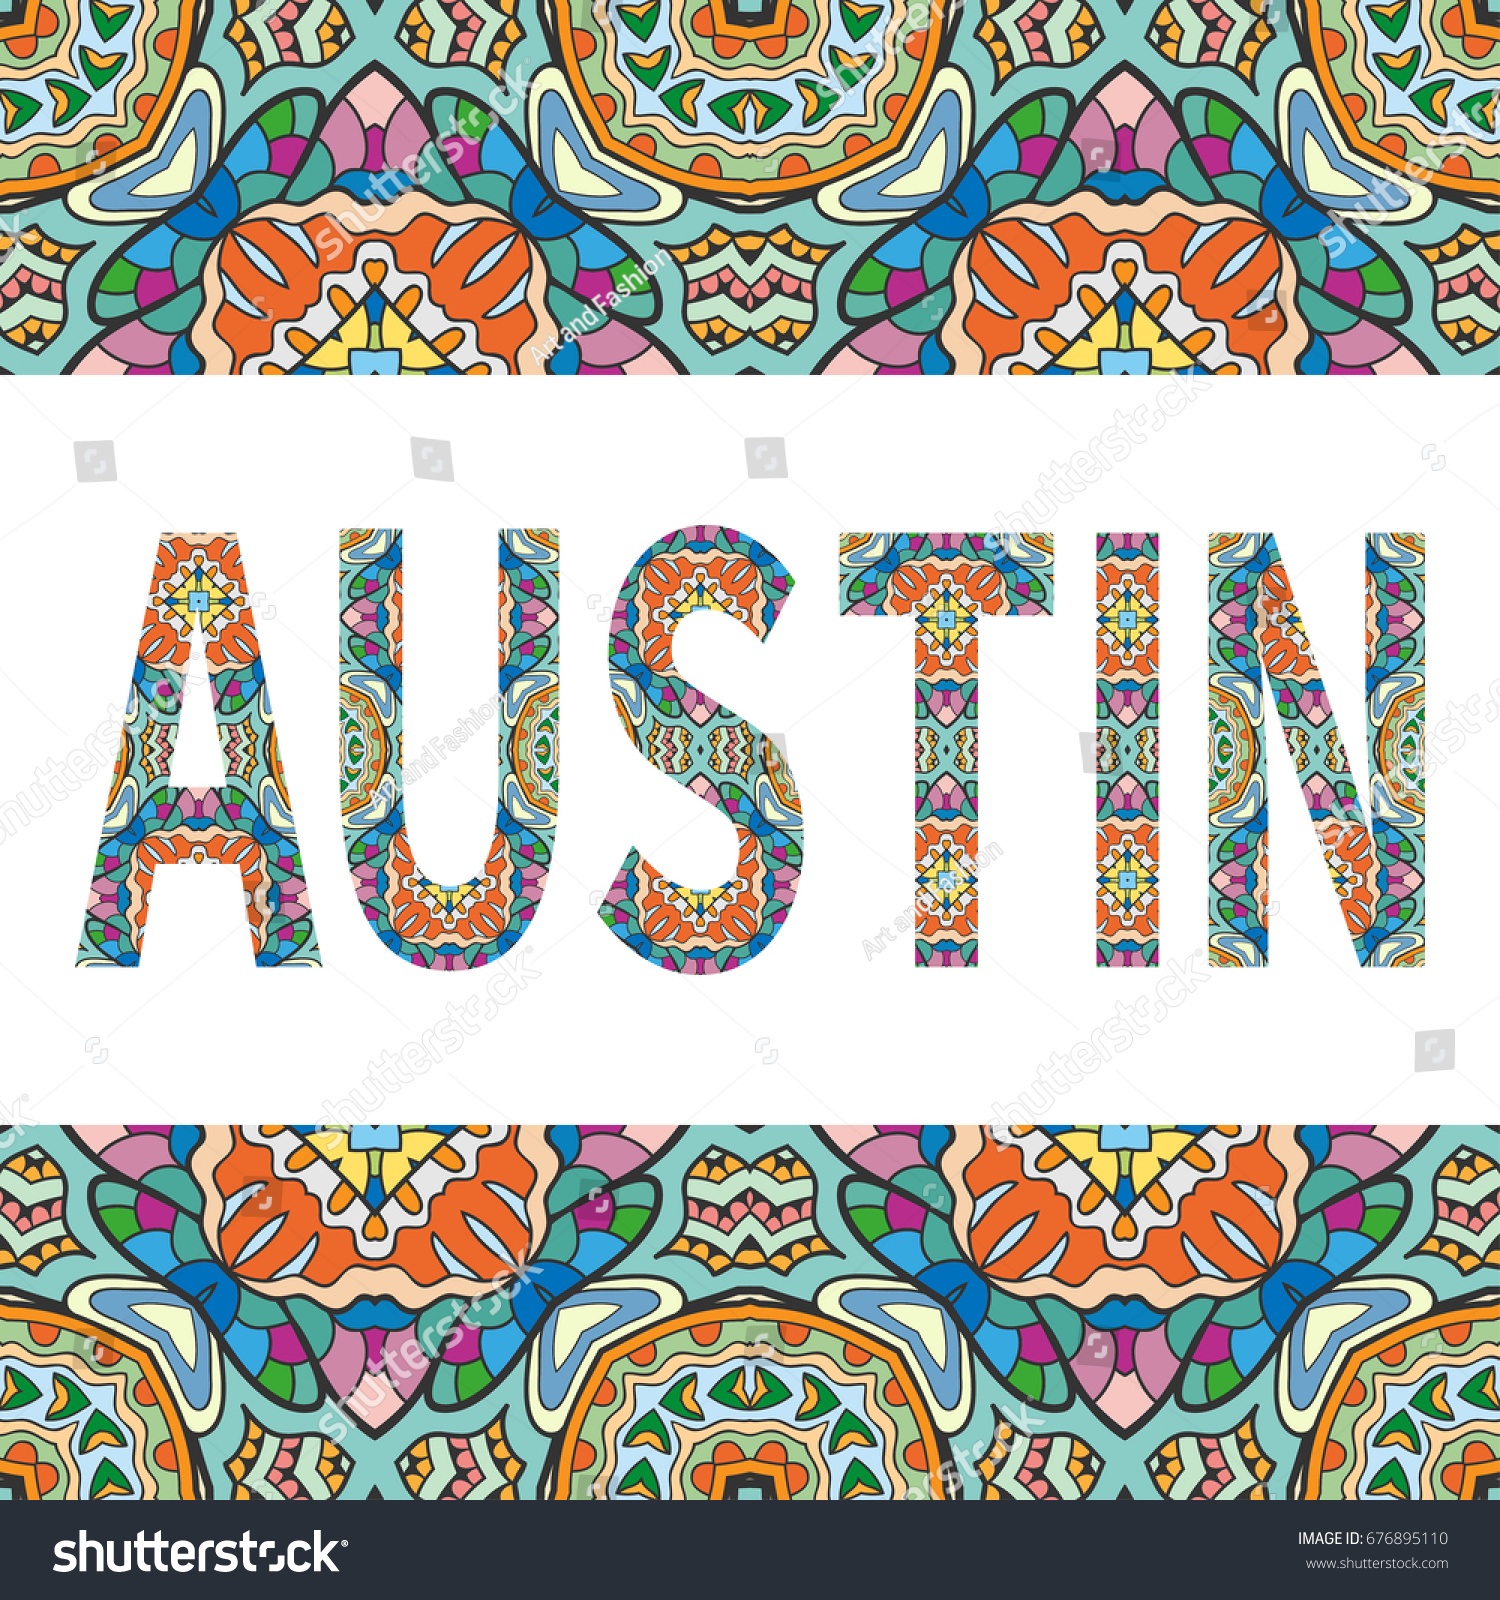 Austin Sign Lettering Tribal Ethnic Ornament Stock Vector 676895110 ...